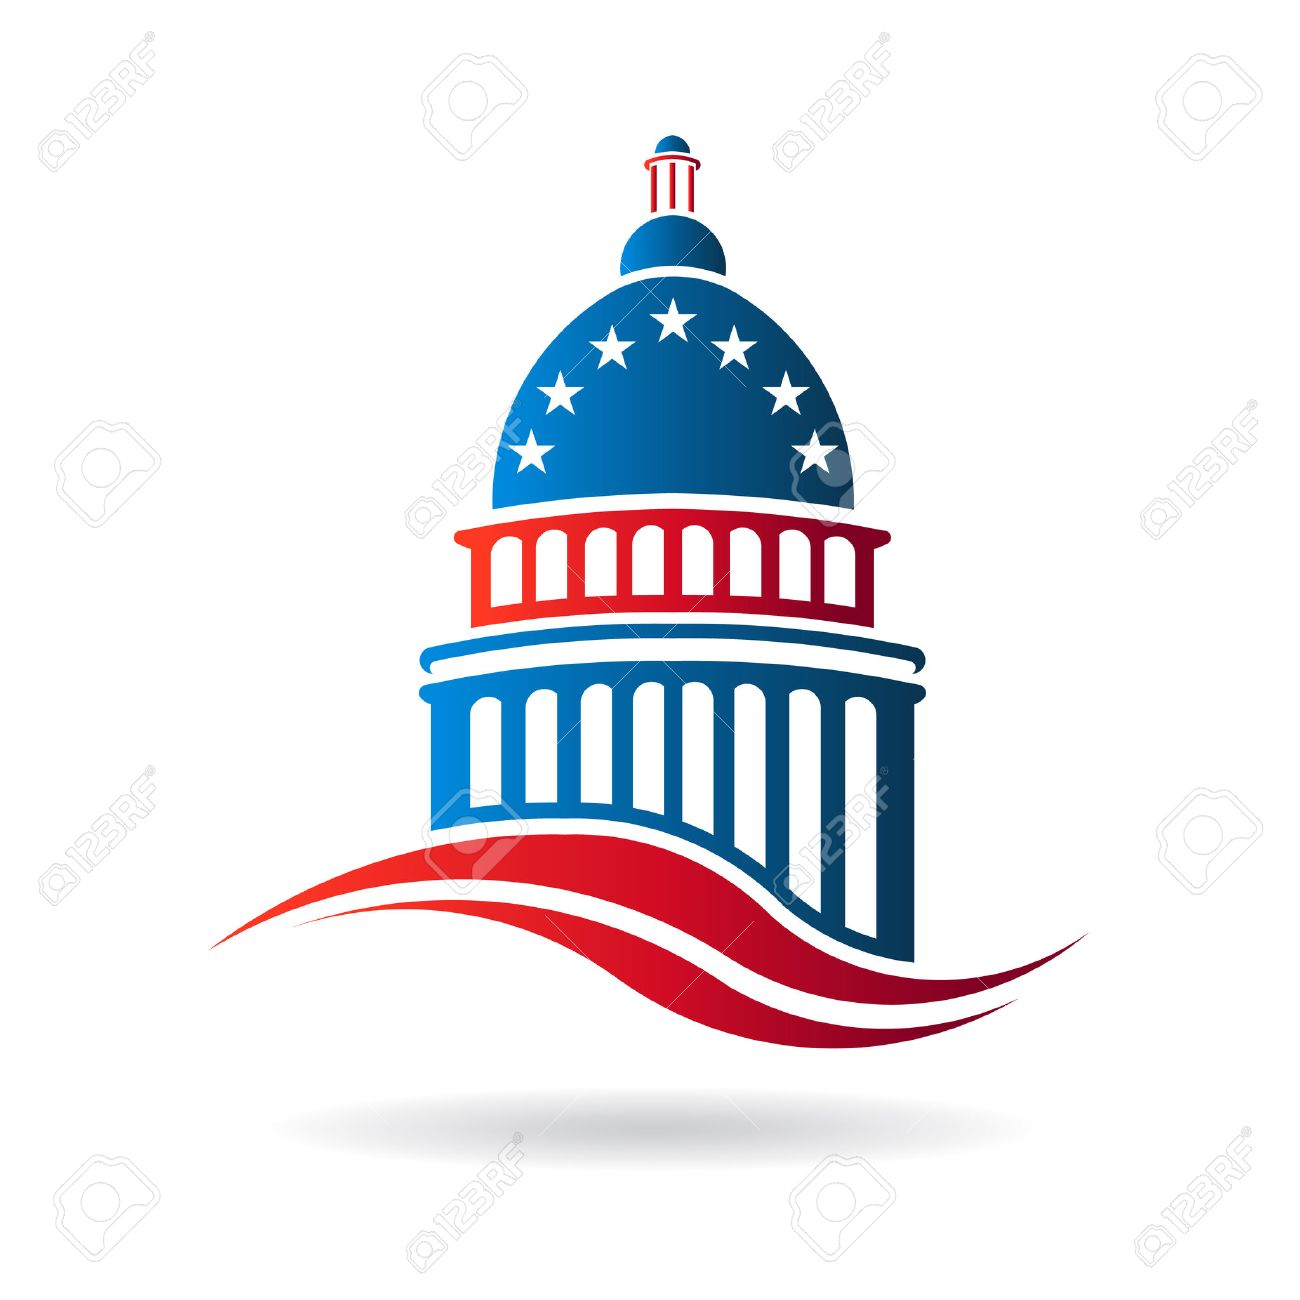 capitol building in red white and blue royalty free cliparts rh 123rf com capitol building vector artwork texas capitol building vector